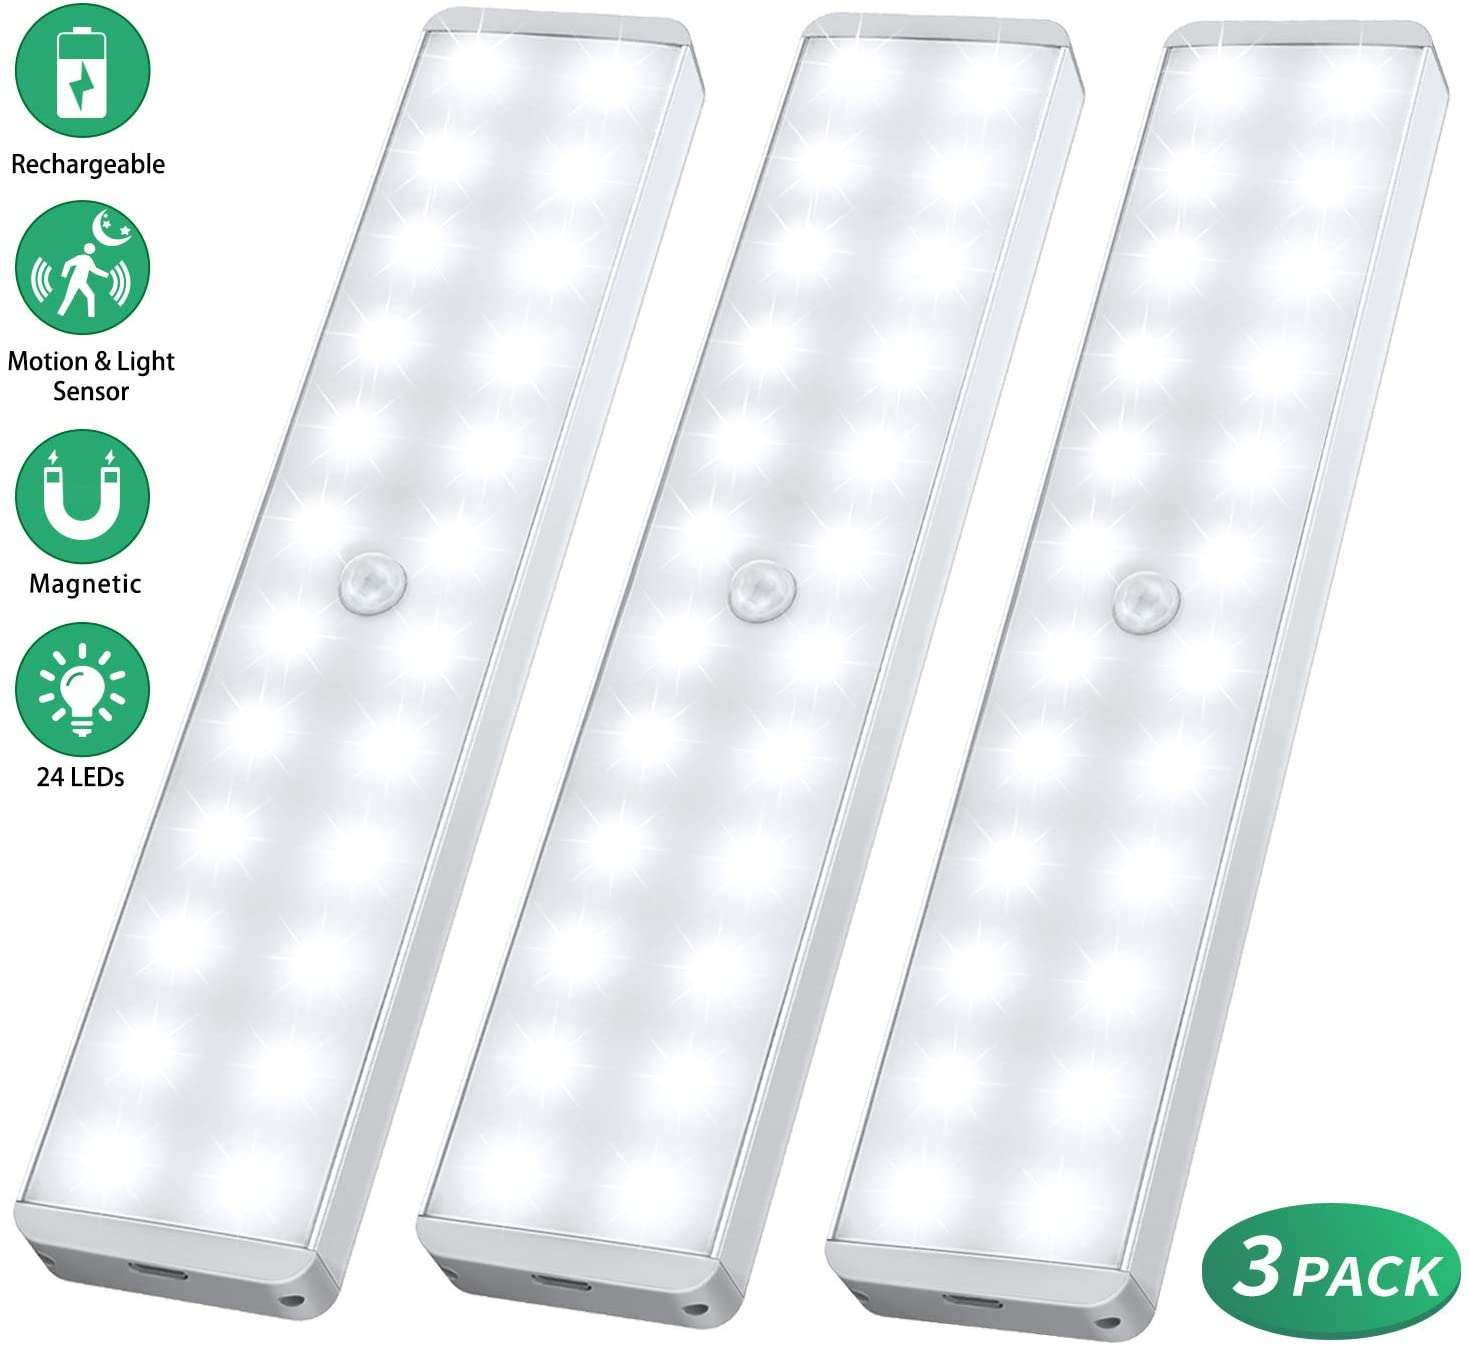 Yoybi Handmade Home & Garden White 24-LED Rechargeable / 1 PC Motion Sensor Closet Light for Stairs,Wardrobe,Kitchen,Hallway